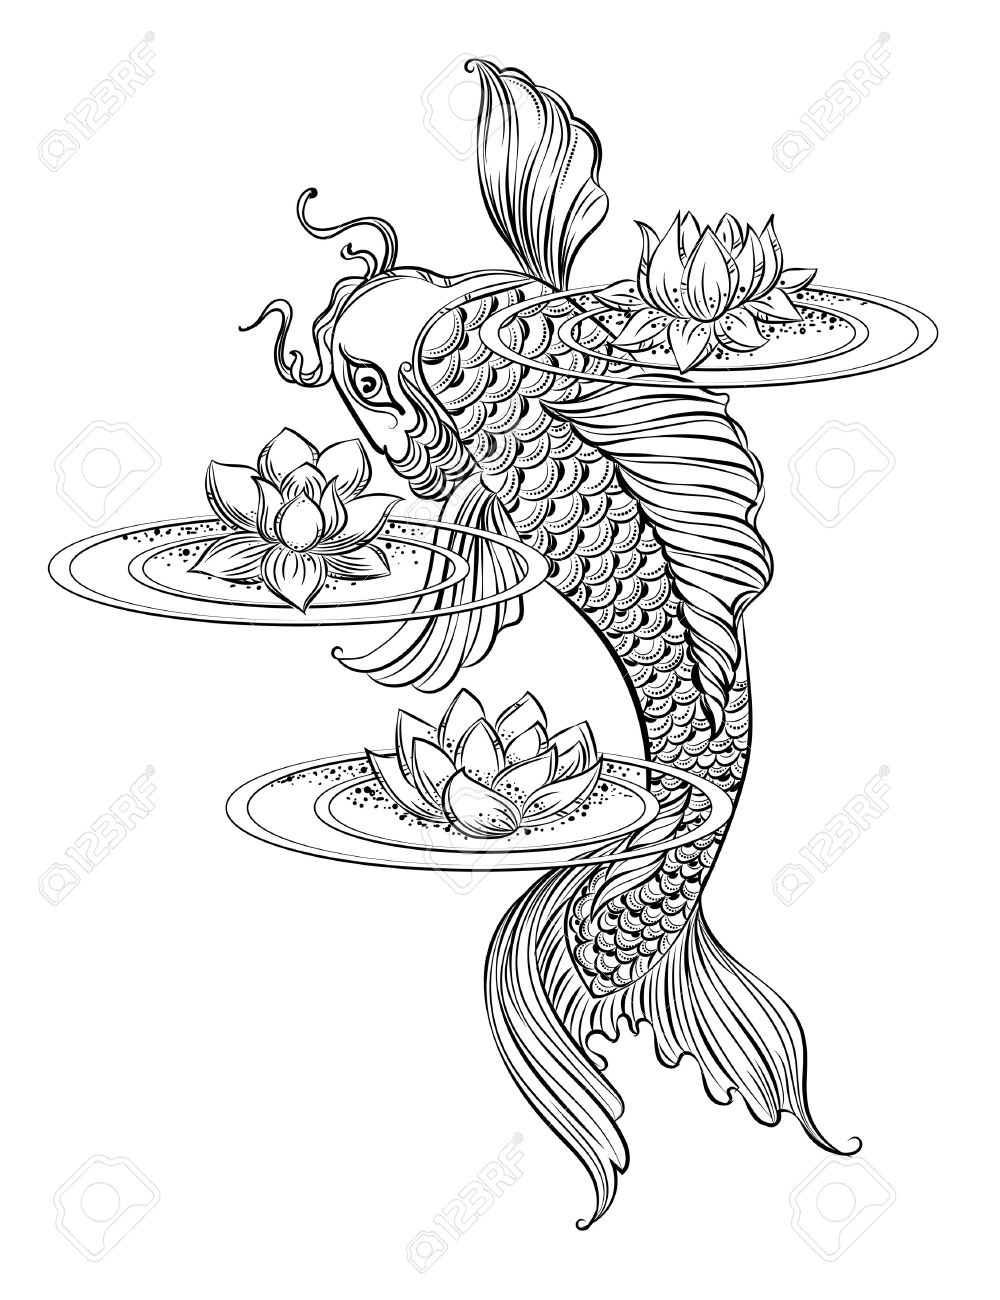 0963ac16f3e46 Hand drawn Asian spiritual symbols - koi carp with lotus and waves. It can  be